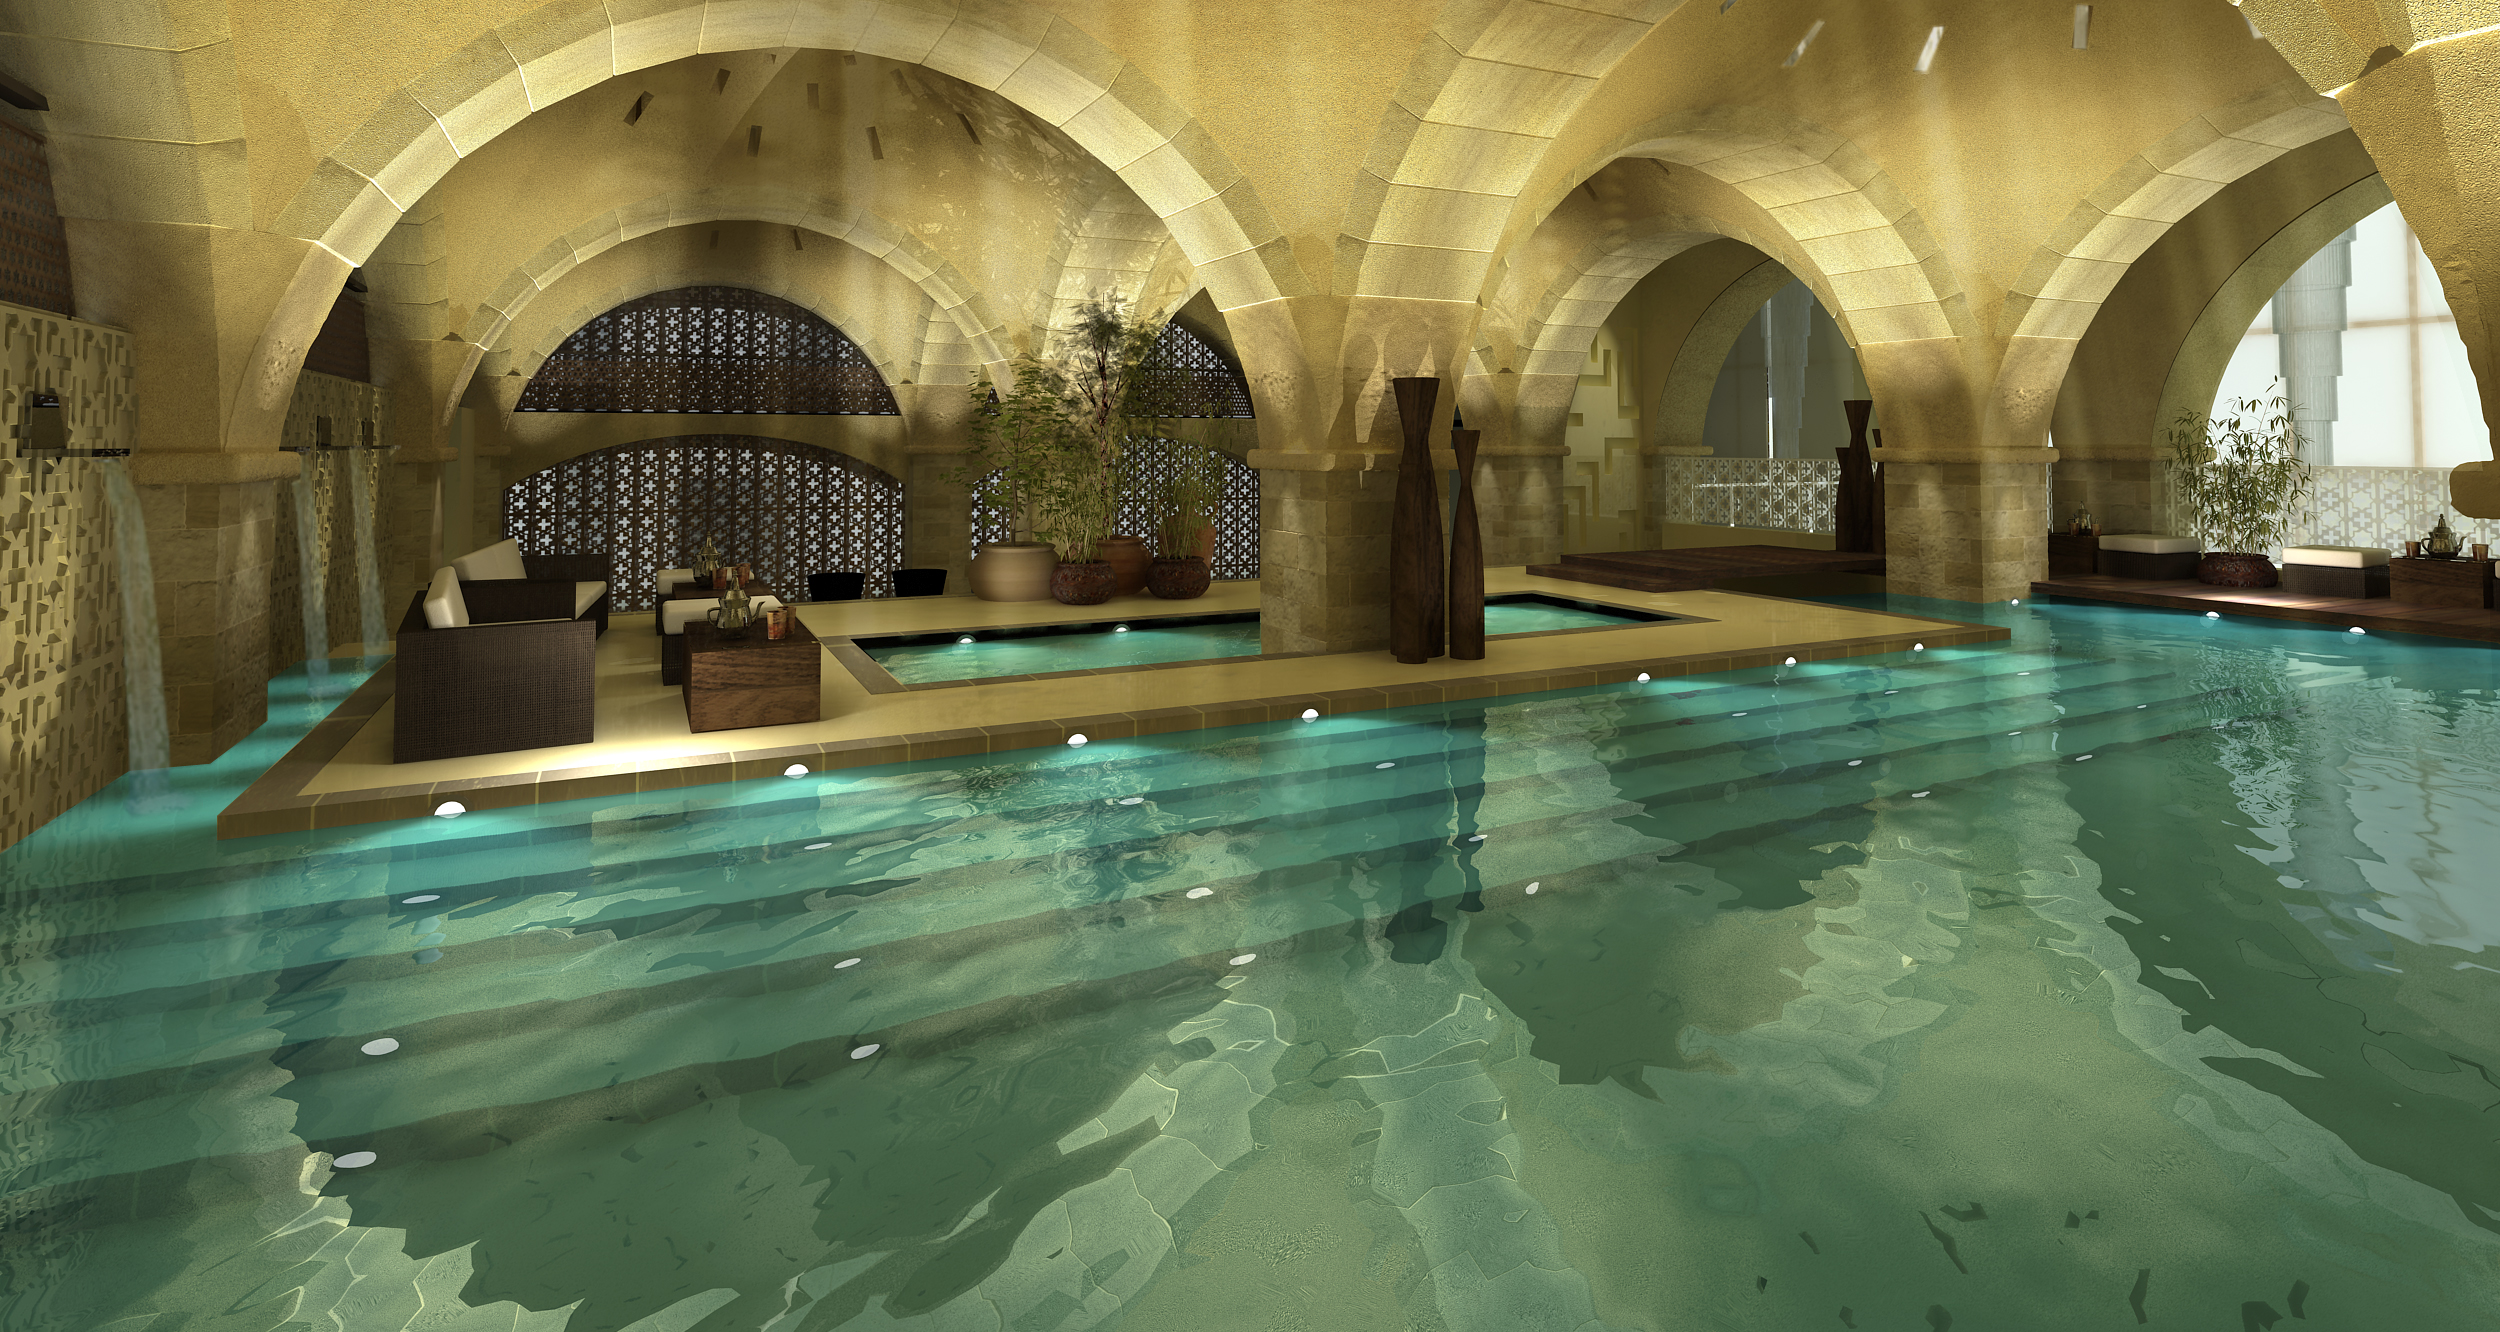 Inspiration Architects, architecture firm in Newbury, designed Turkish baths all arranged around a central dramatic pool space designed to allude to ancient Roman baths